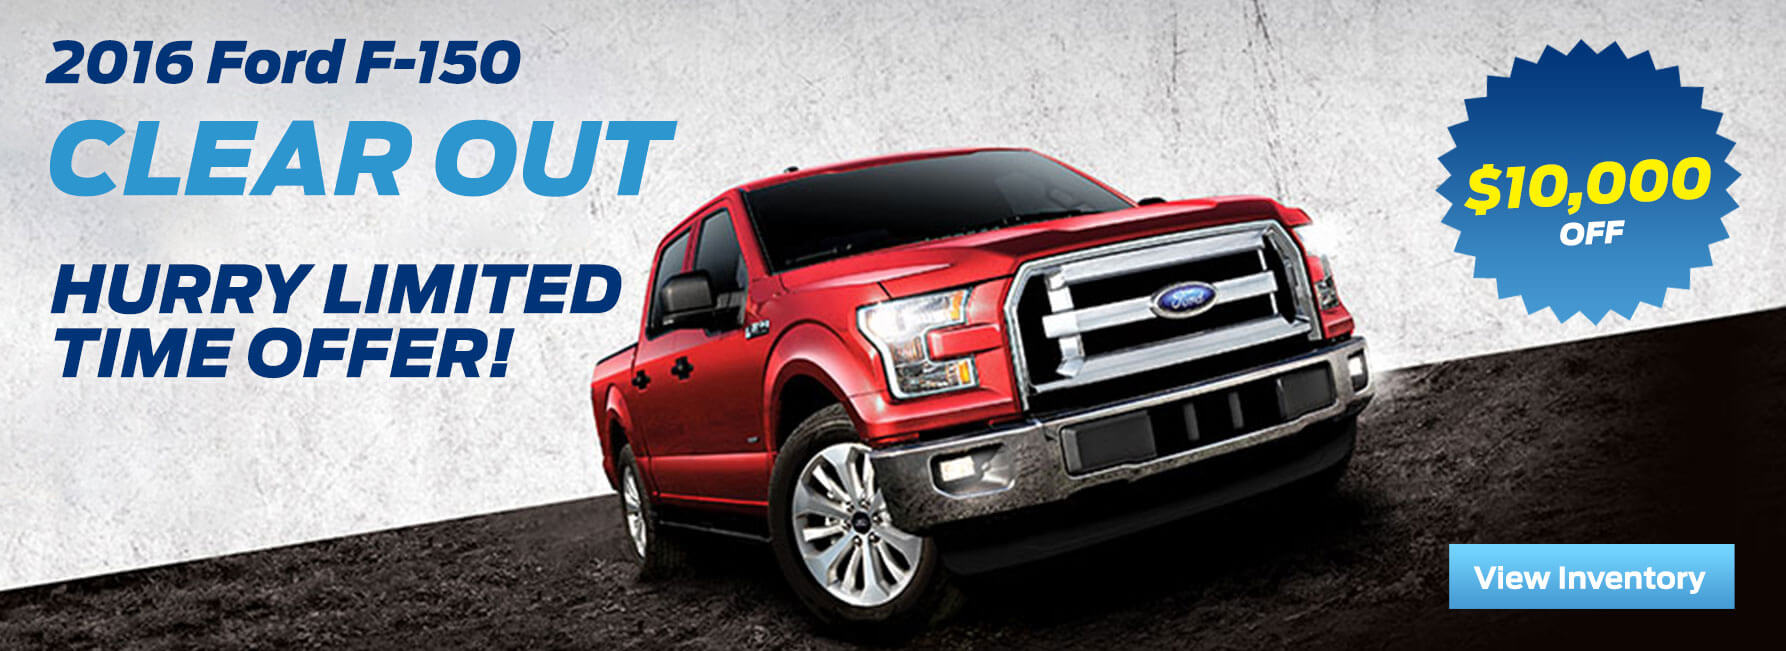 2016 F-150 up to $10,000 off